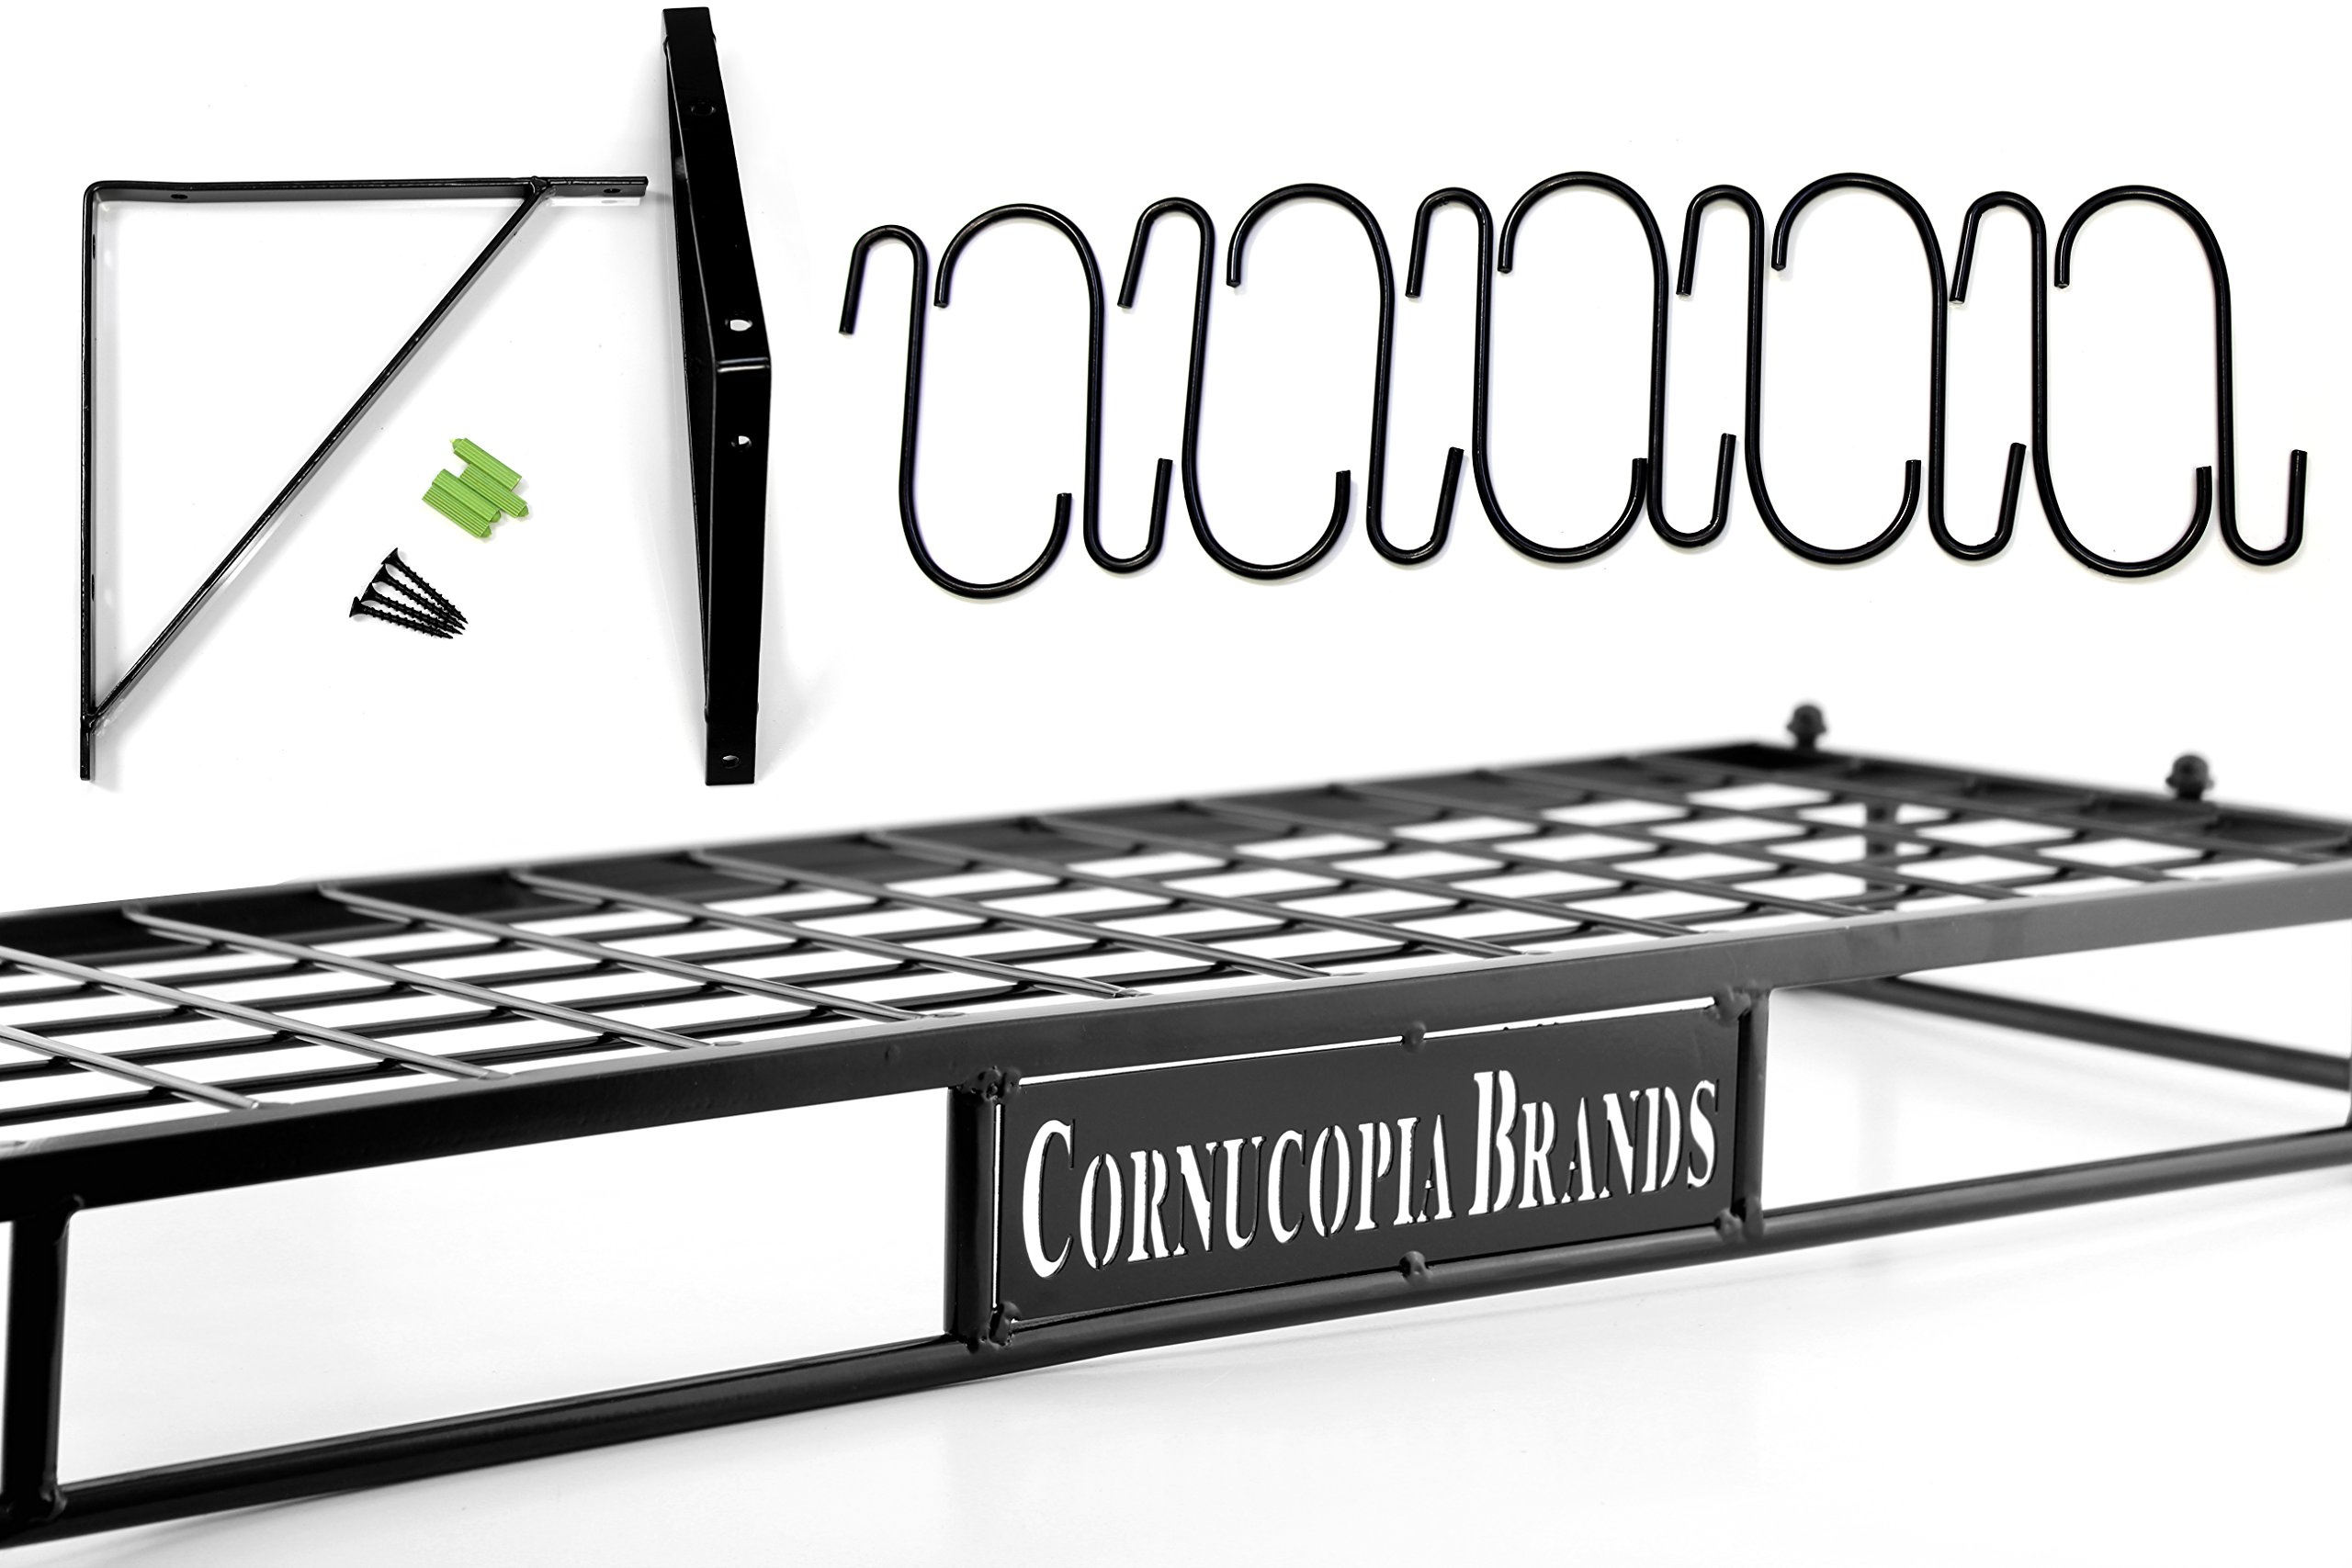 Wall-Mounted Pot Hanging Rack, 24 by 10 Inches, All-Black Decorative Kitchen Shelf w/ 10 S-Hooks by Cornucopia Brands (Image #4)